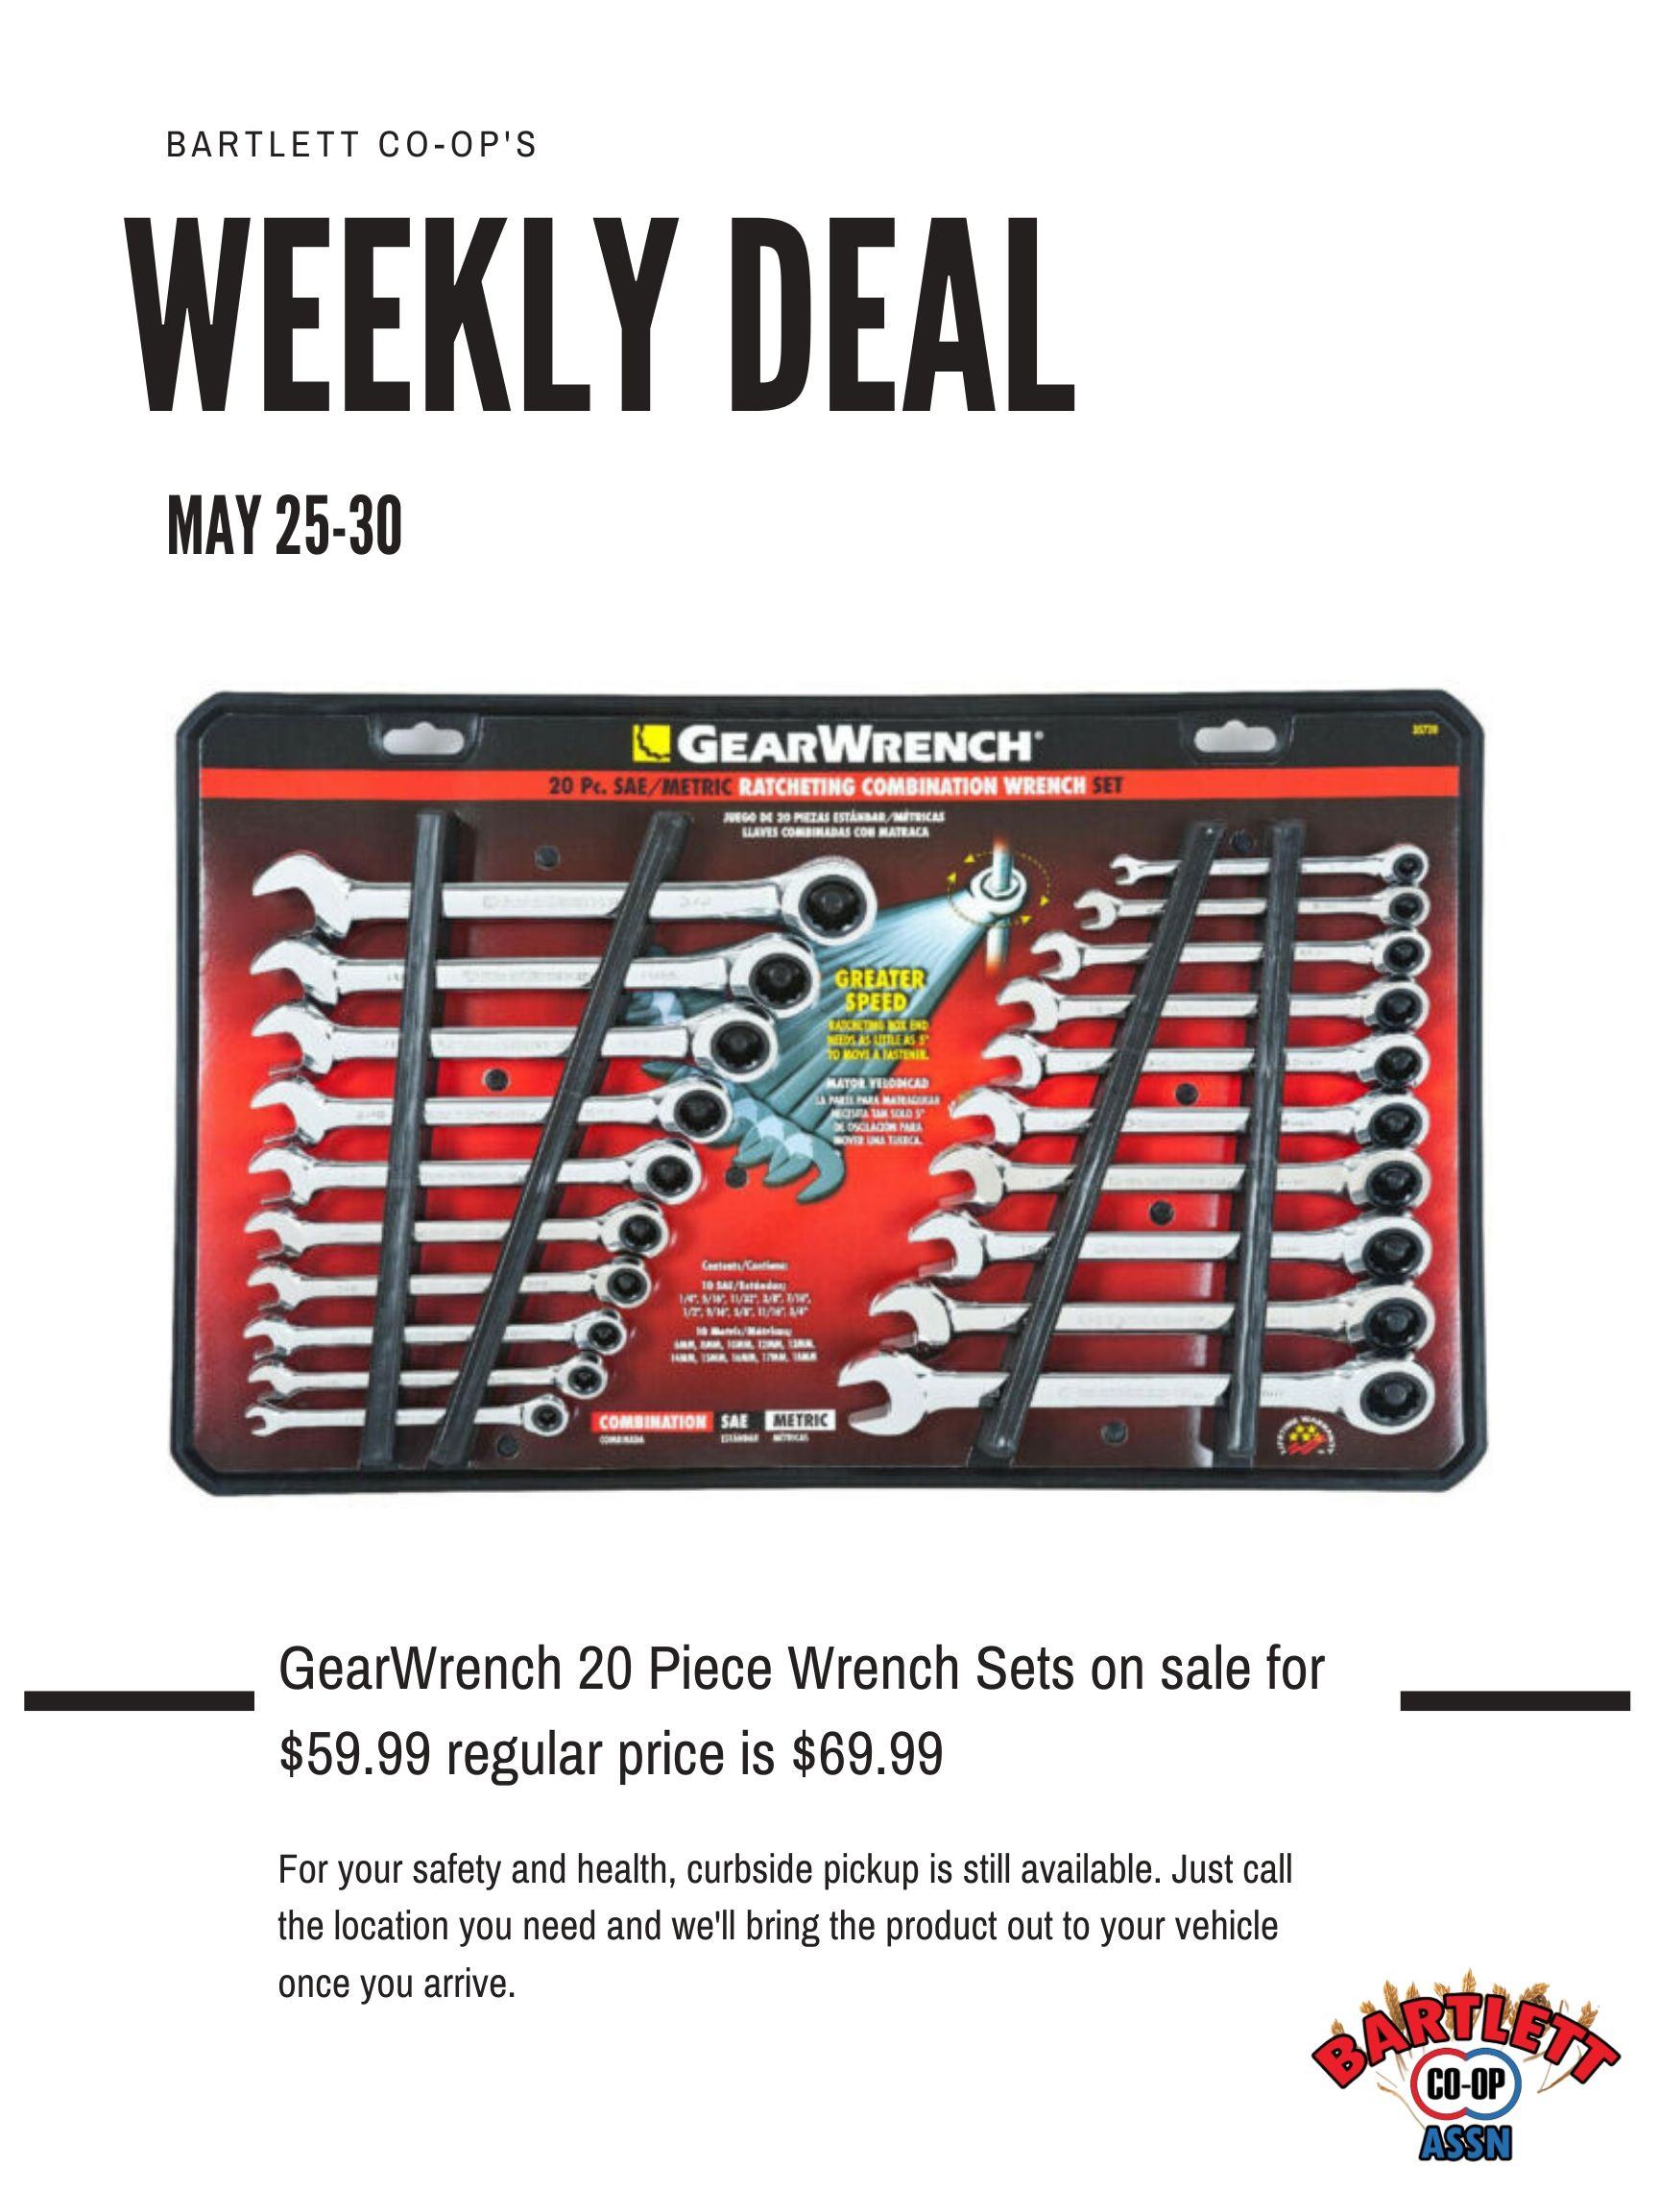 GearWrench Deal